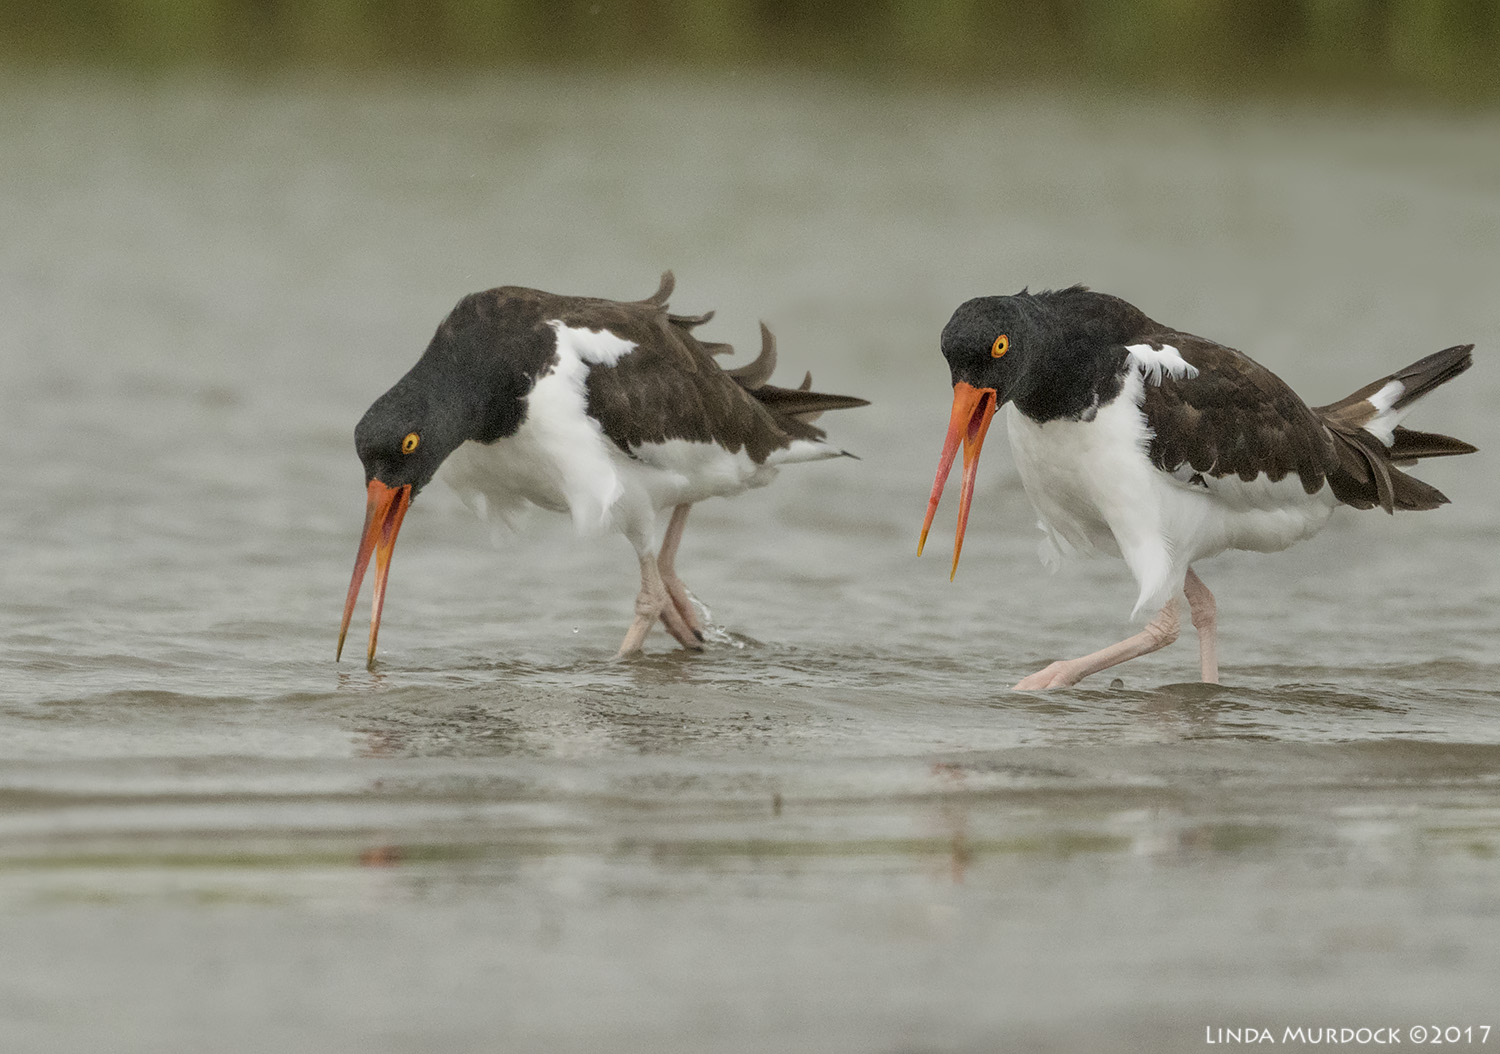 Pair of Oystercatchers walking side by side, calling Nikon D810 with NIKKOR 500mm f/4E VR + Nikon 1.4x TC ~ 1/2000  sec f/5.6 ISO 2000; tripod